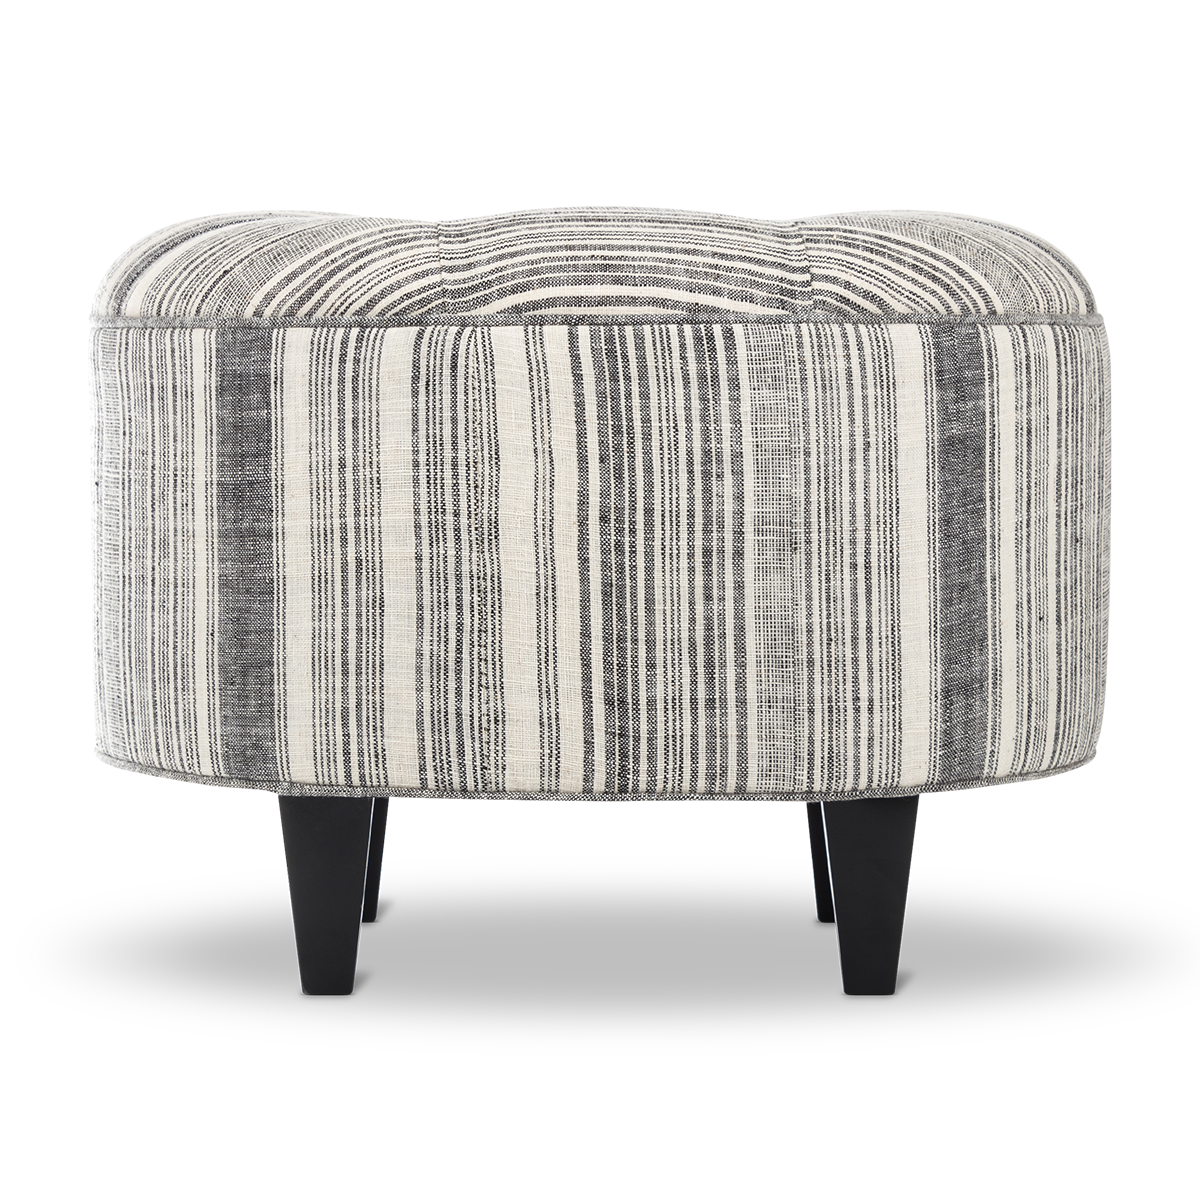 home furniture product photo